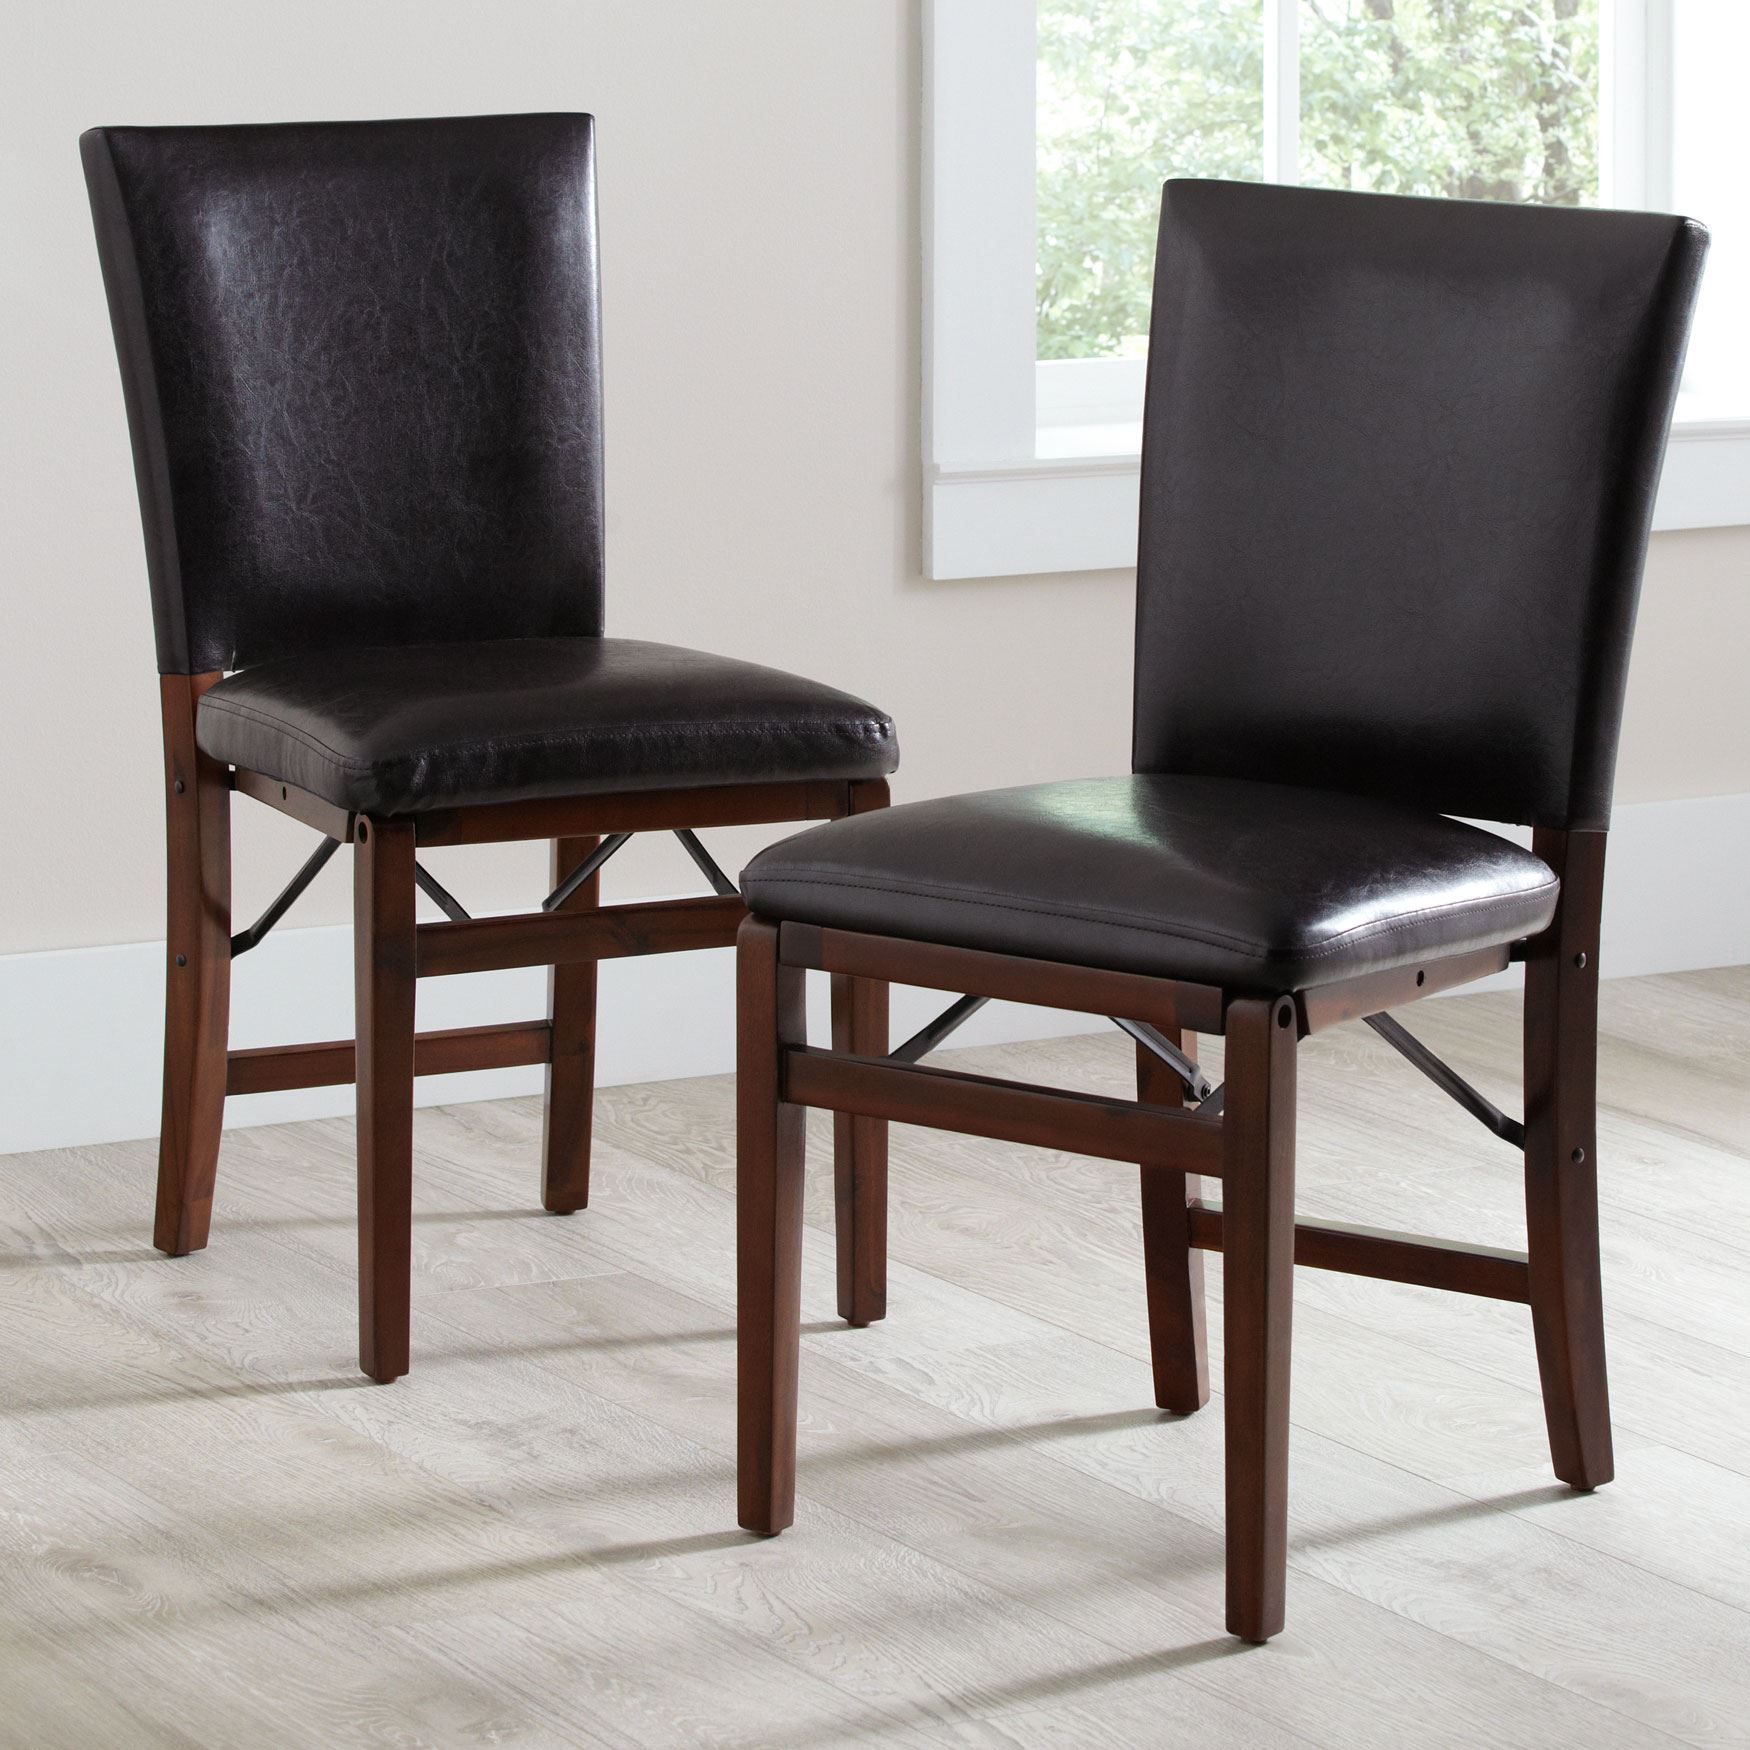 parsons chairs steel chair mrp folding set of 2 plus size dining tables brown